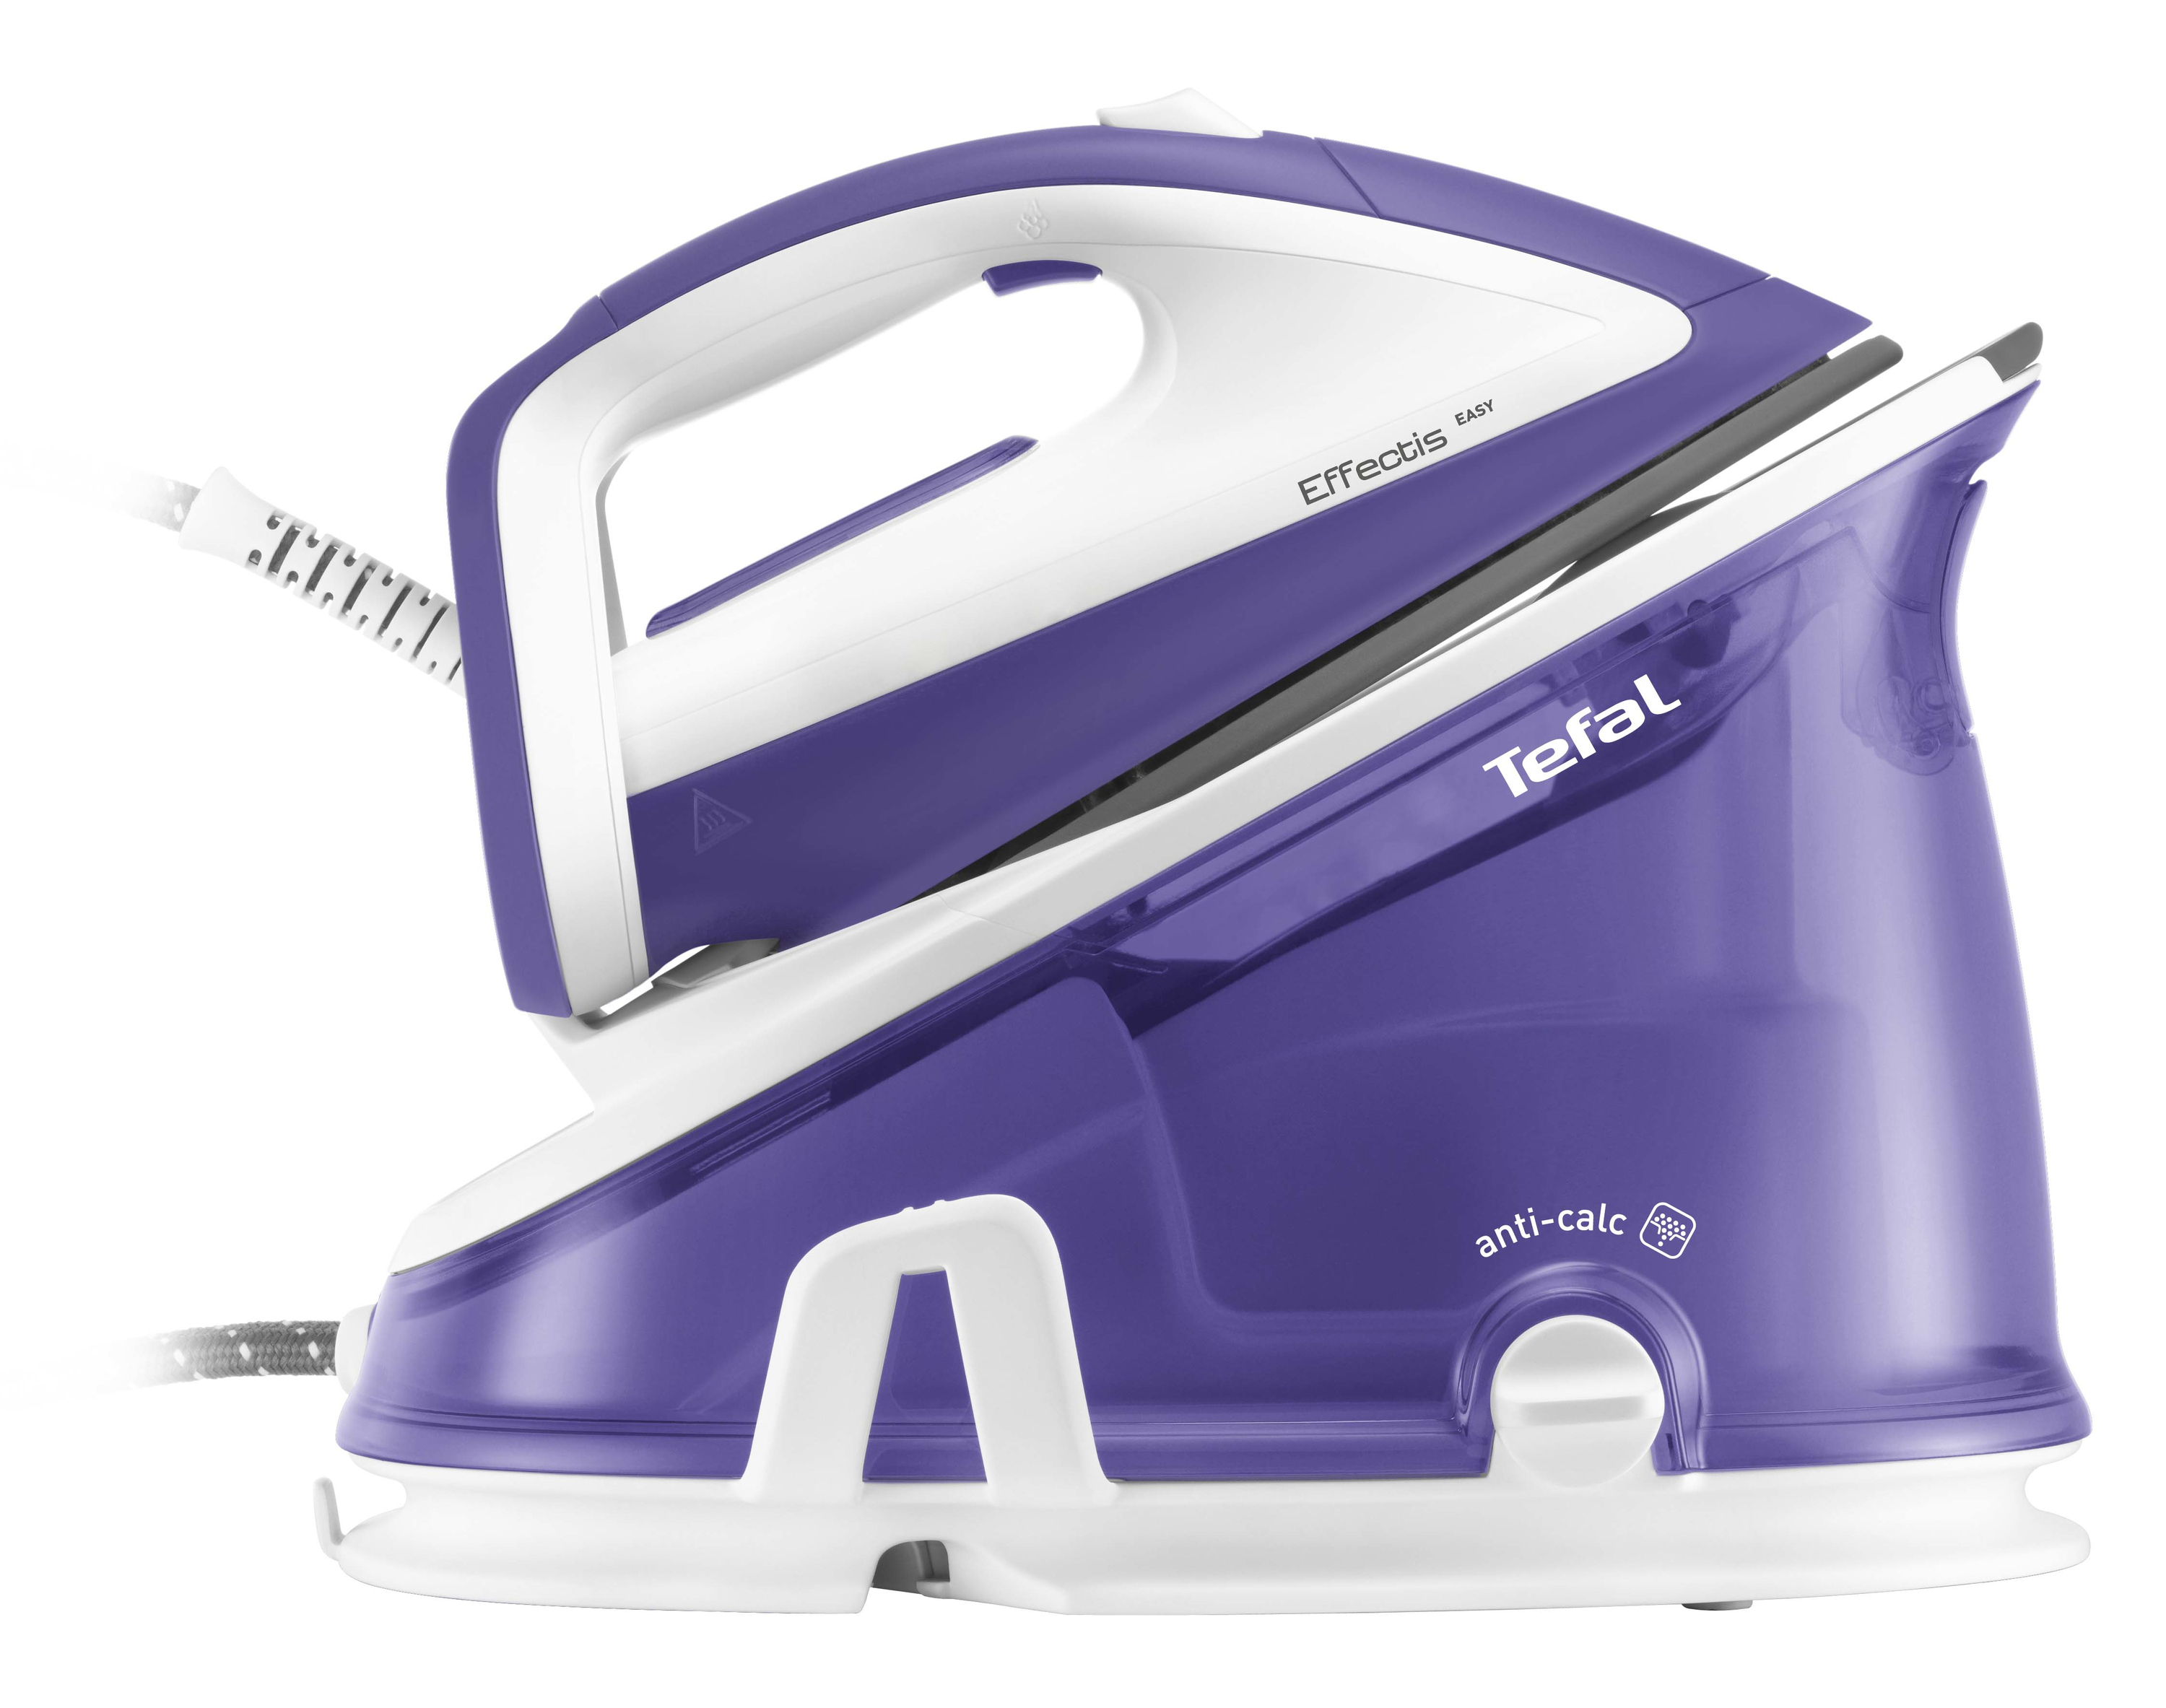 Tefal GV6771 Effectis Easy Plus Dampfgenerator 2200W 5,2bar 1,4l Durilium für 299,99 Euro